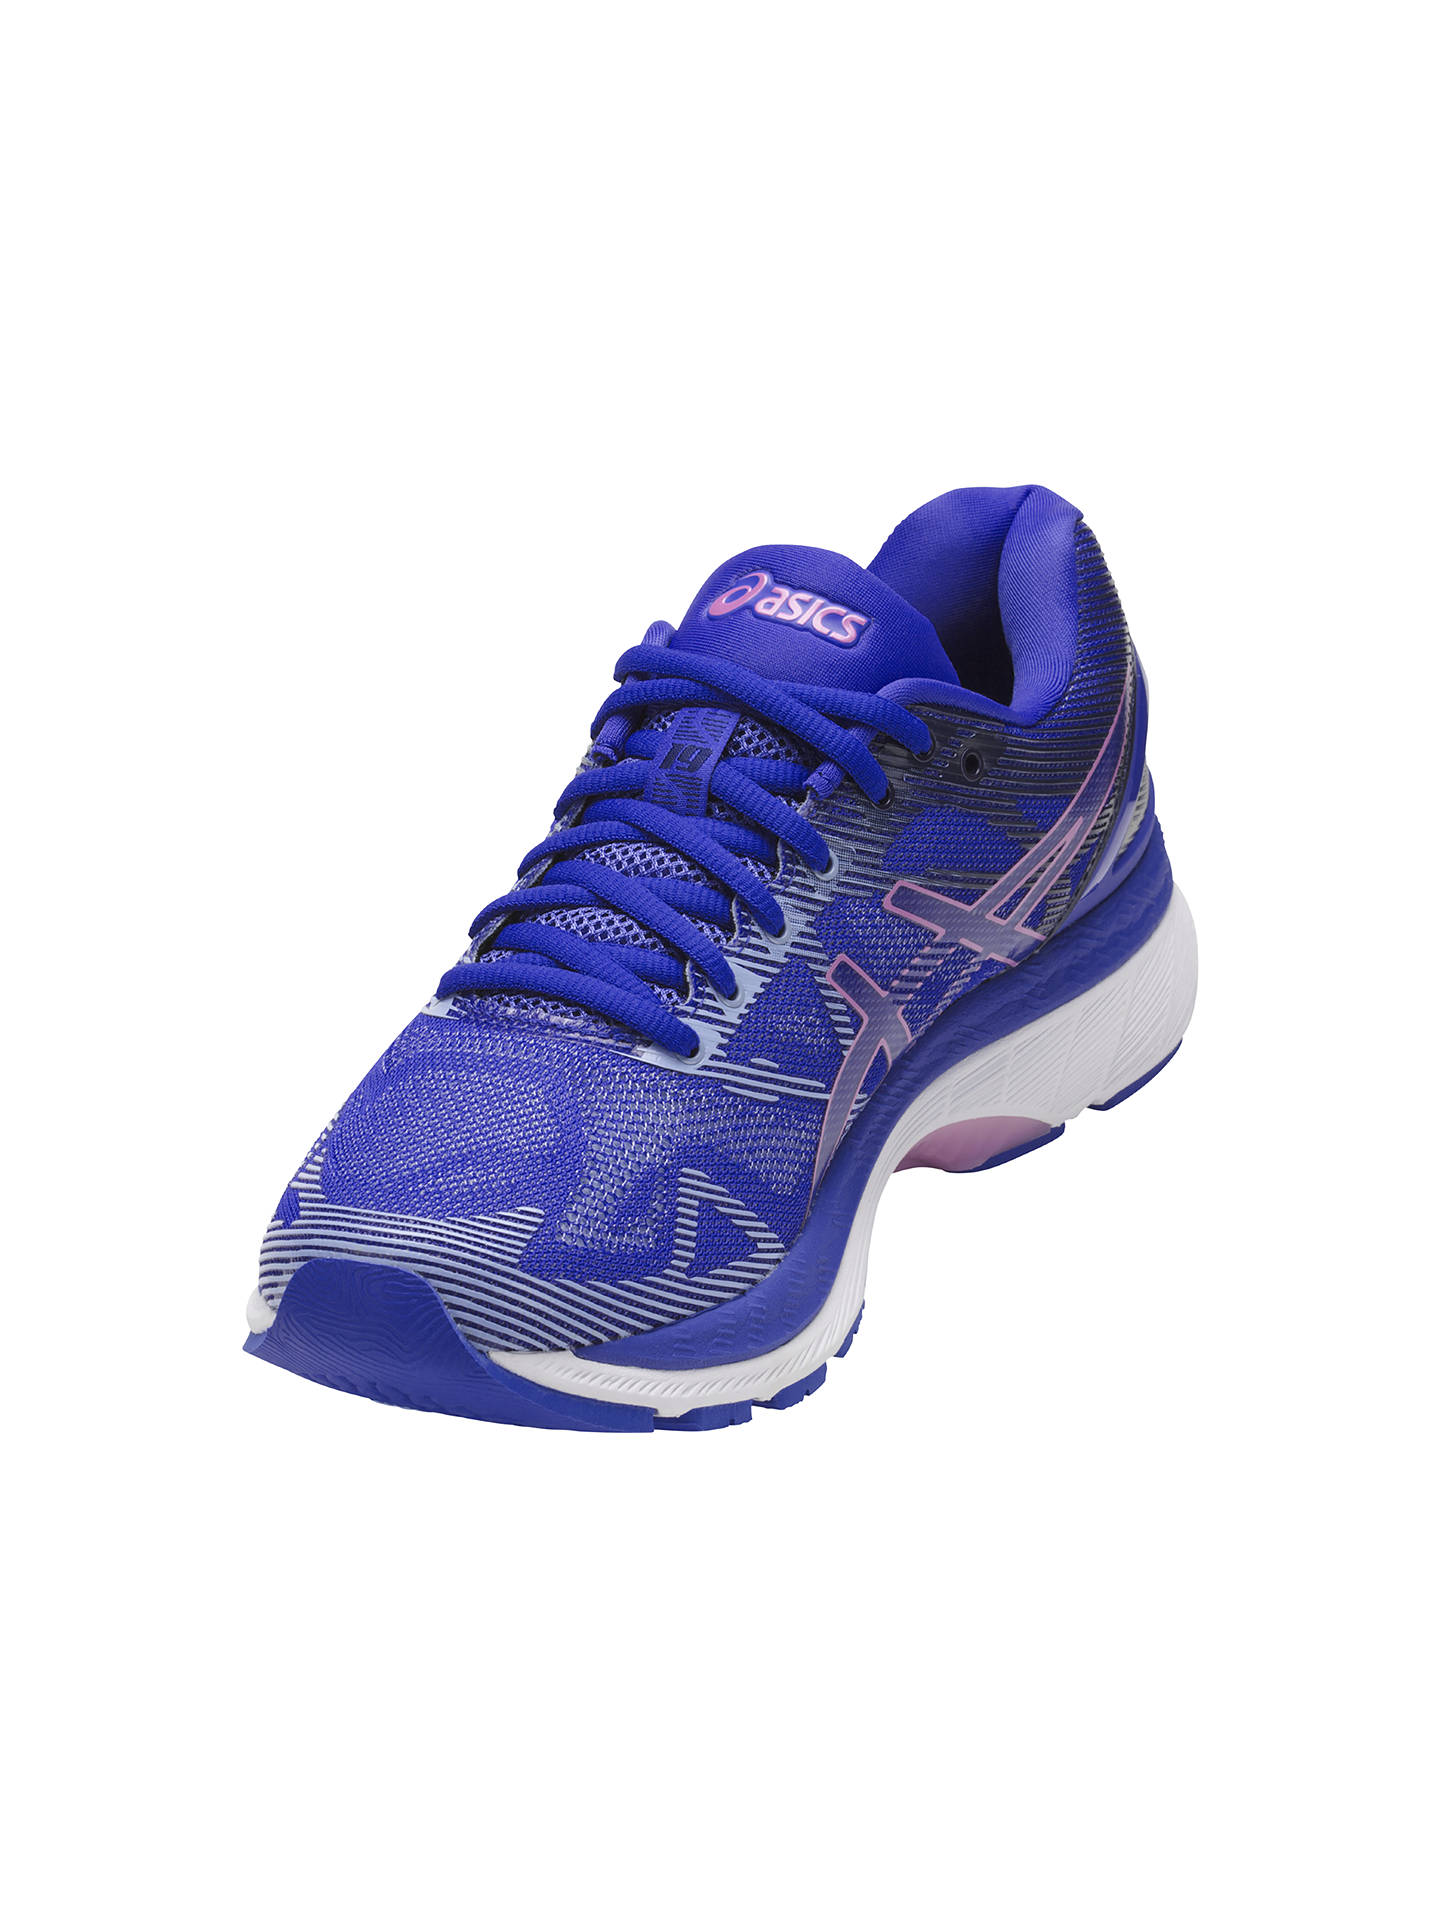 cozy fresh 76e0c ff380 Asics GEL-NIMBUS 19 Women's Running Shoes, Blue/Purple at ...